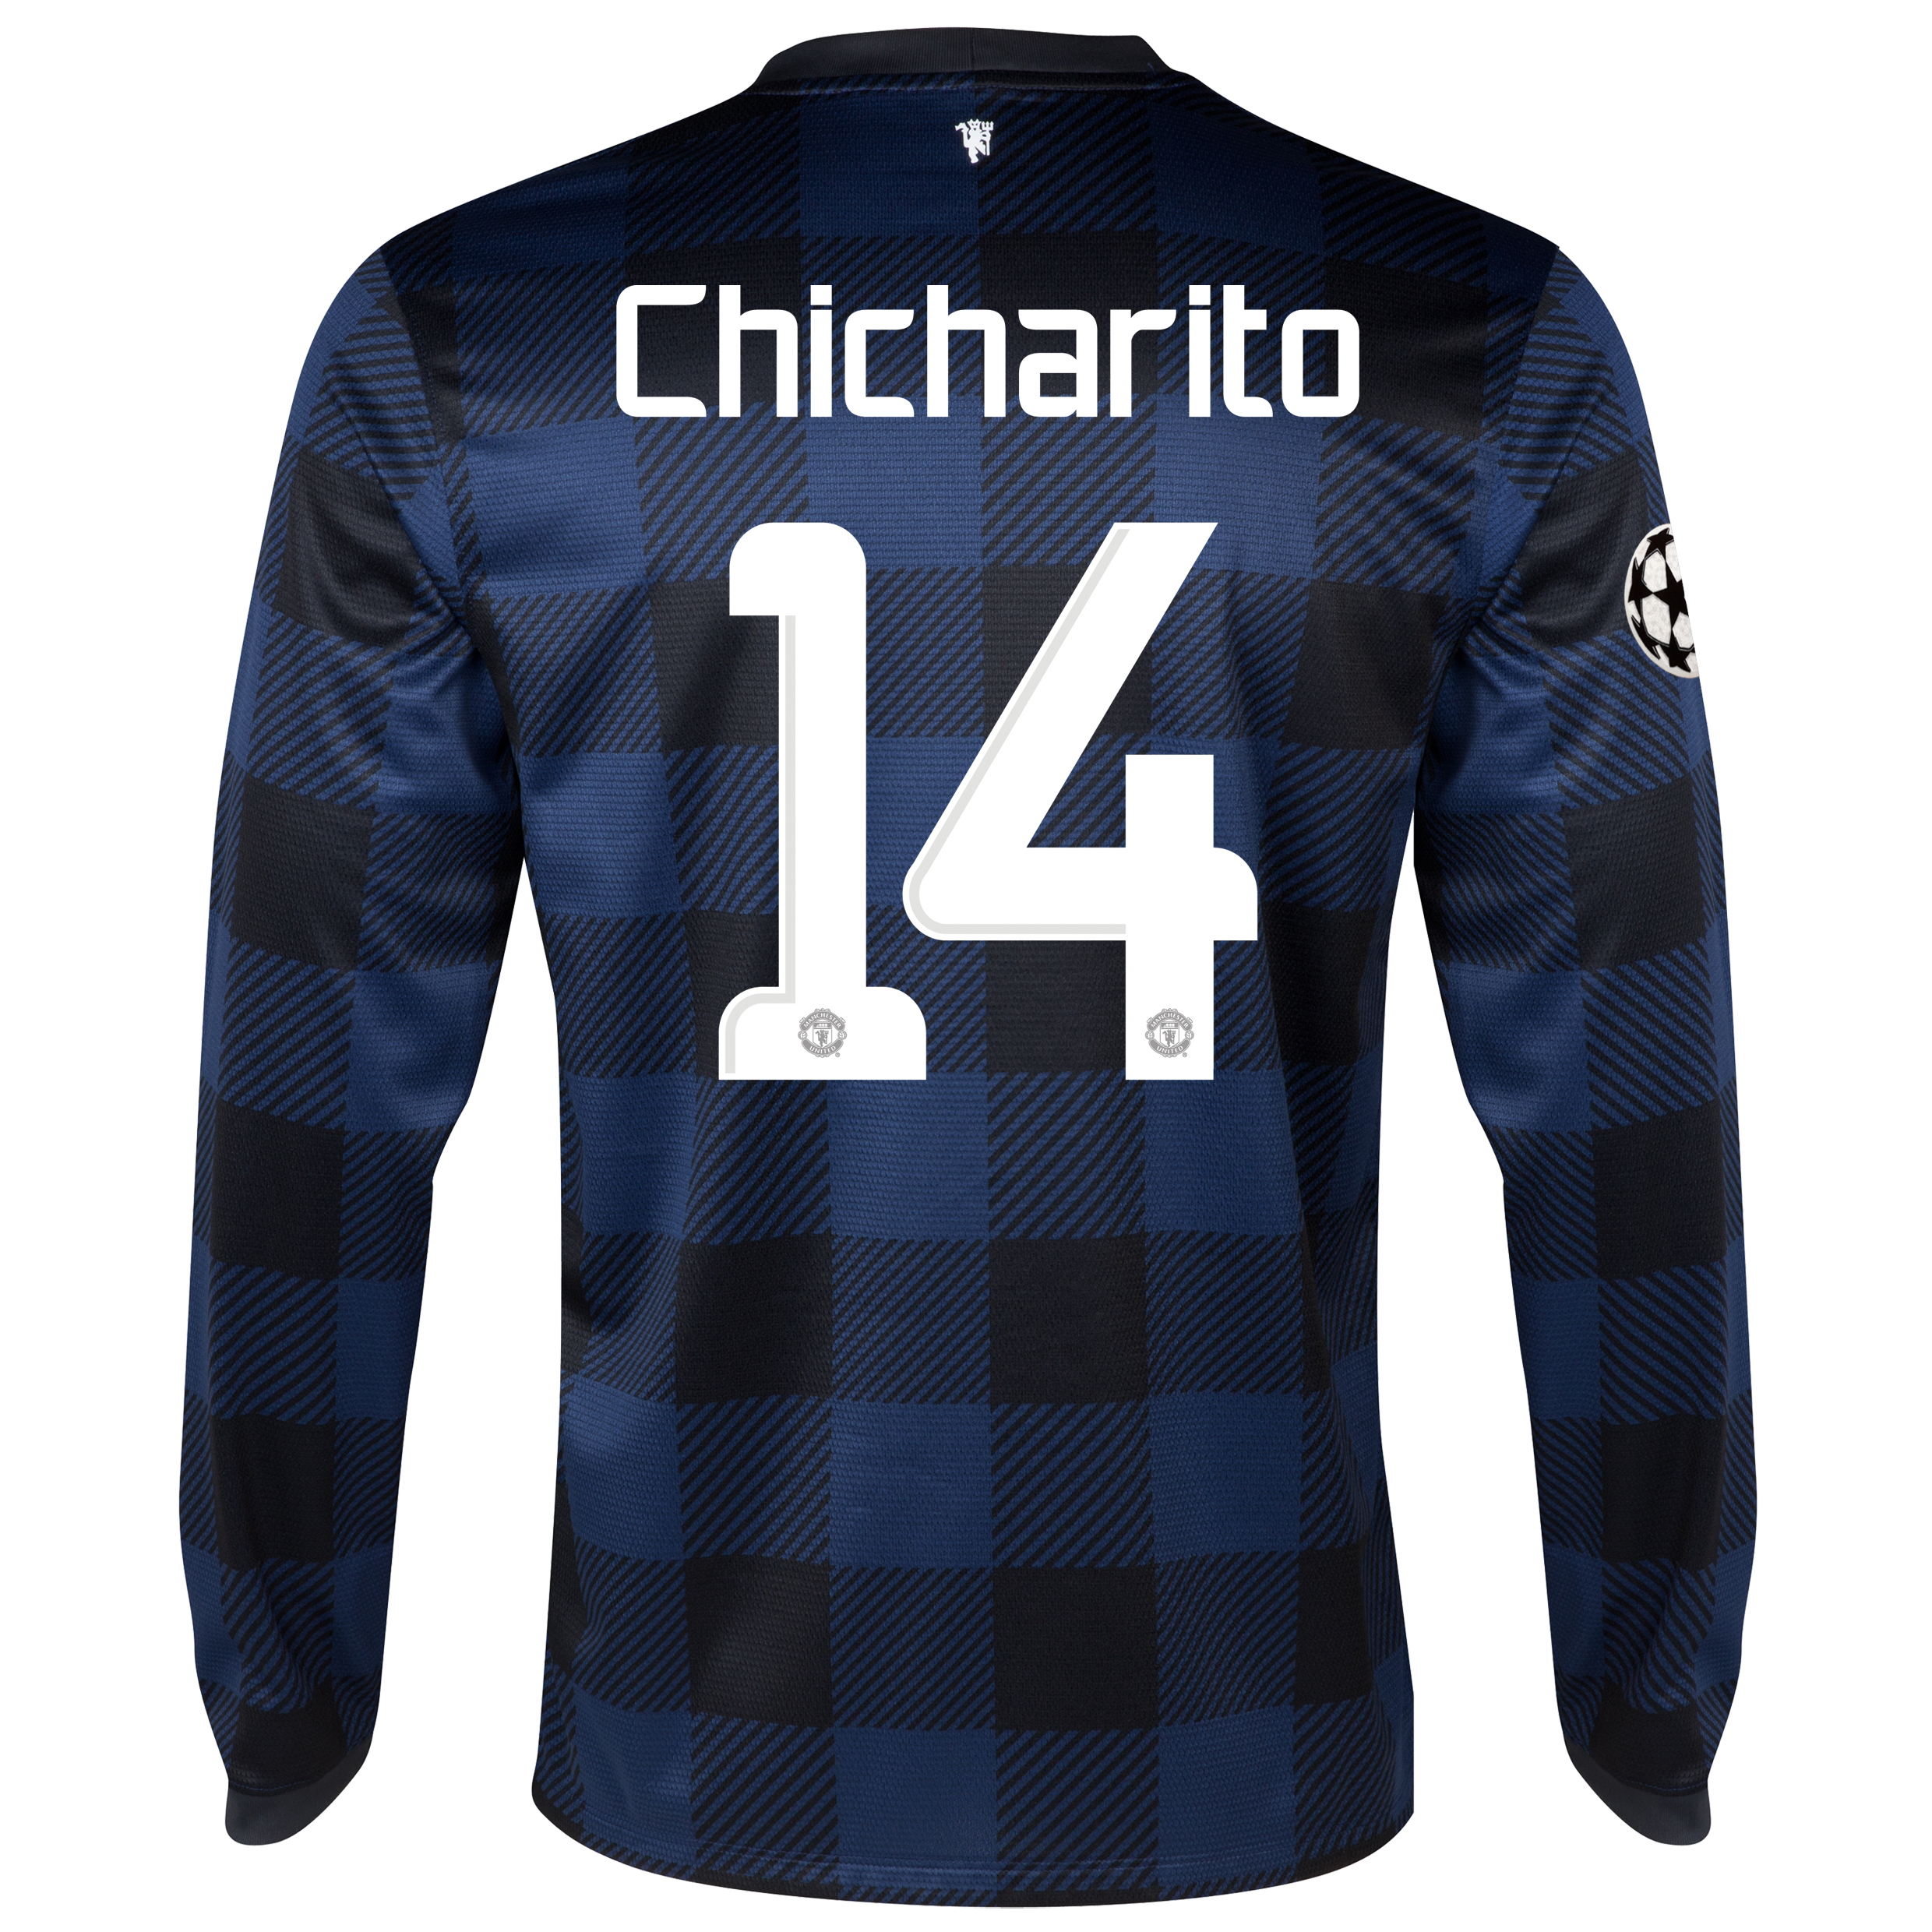 Manchester United UEFA Champions League Away Shirt 2013/14 - Long Sleeved - Kids with Chicharito 14 printing